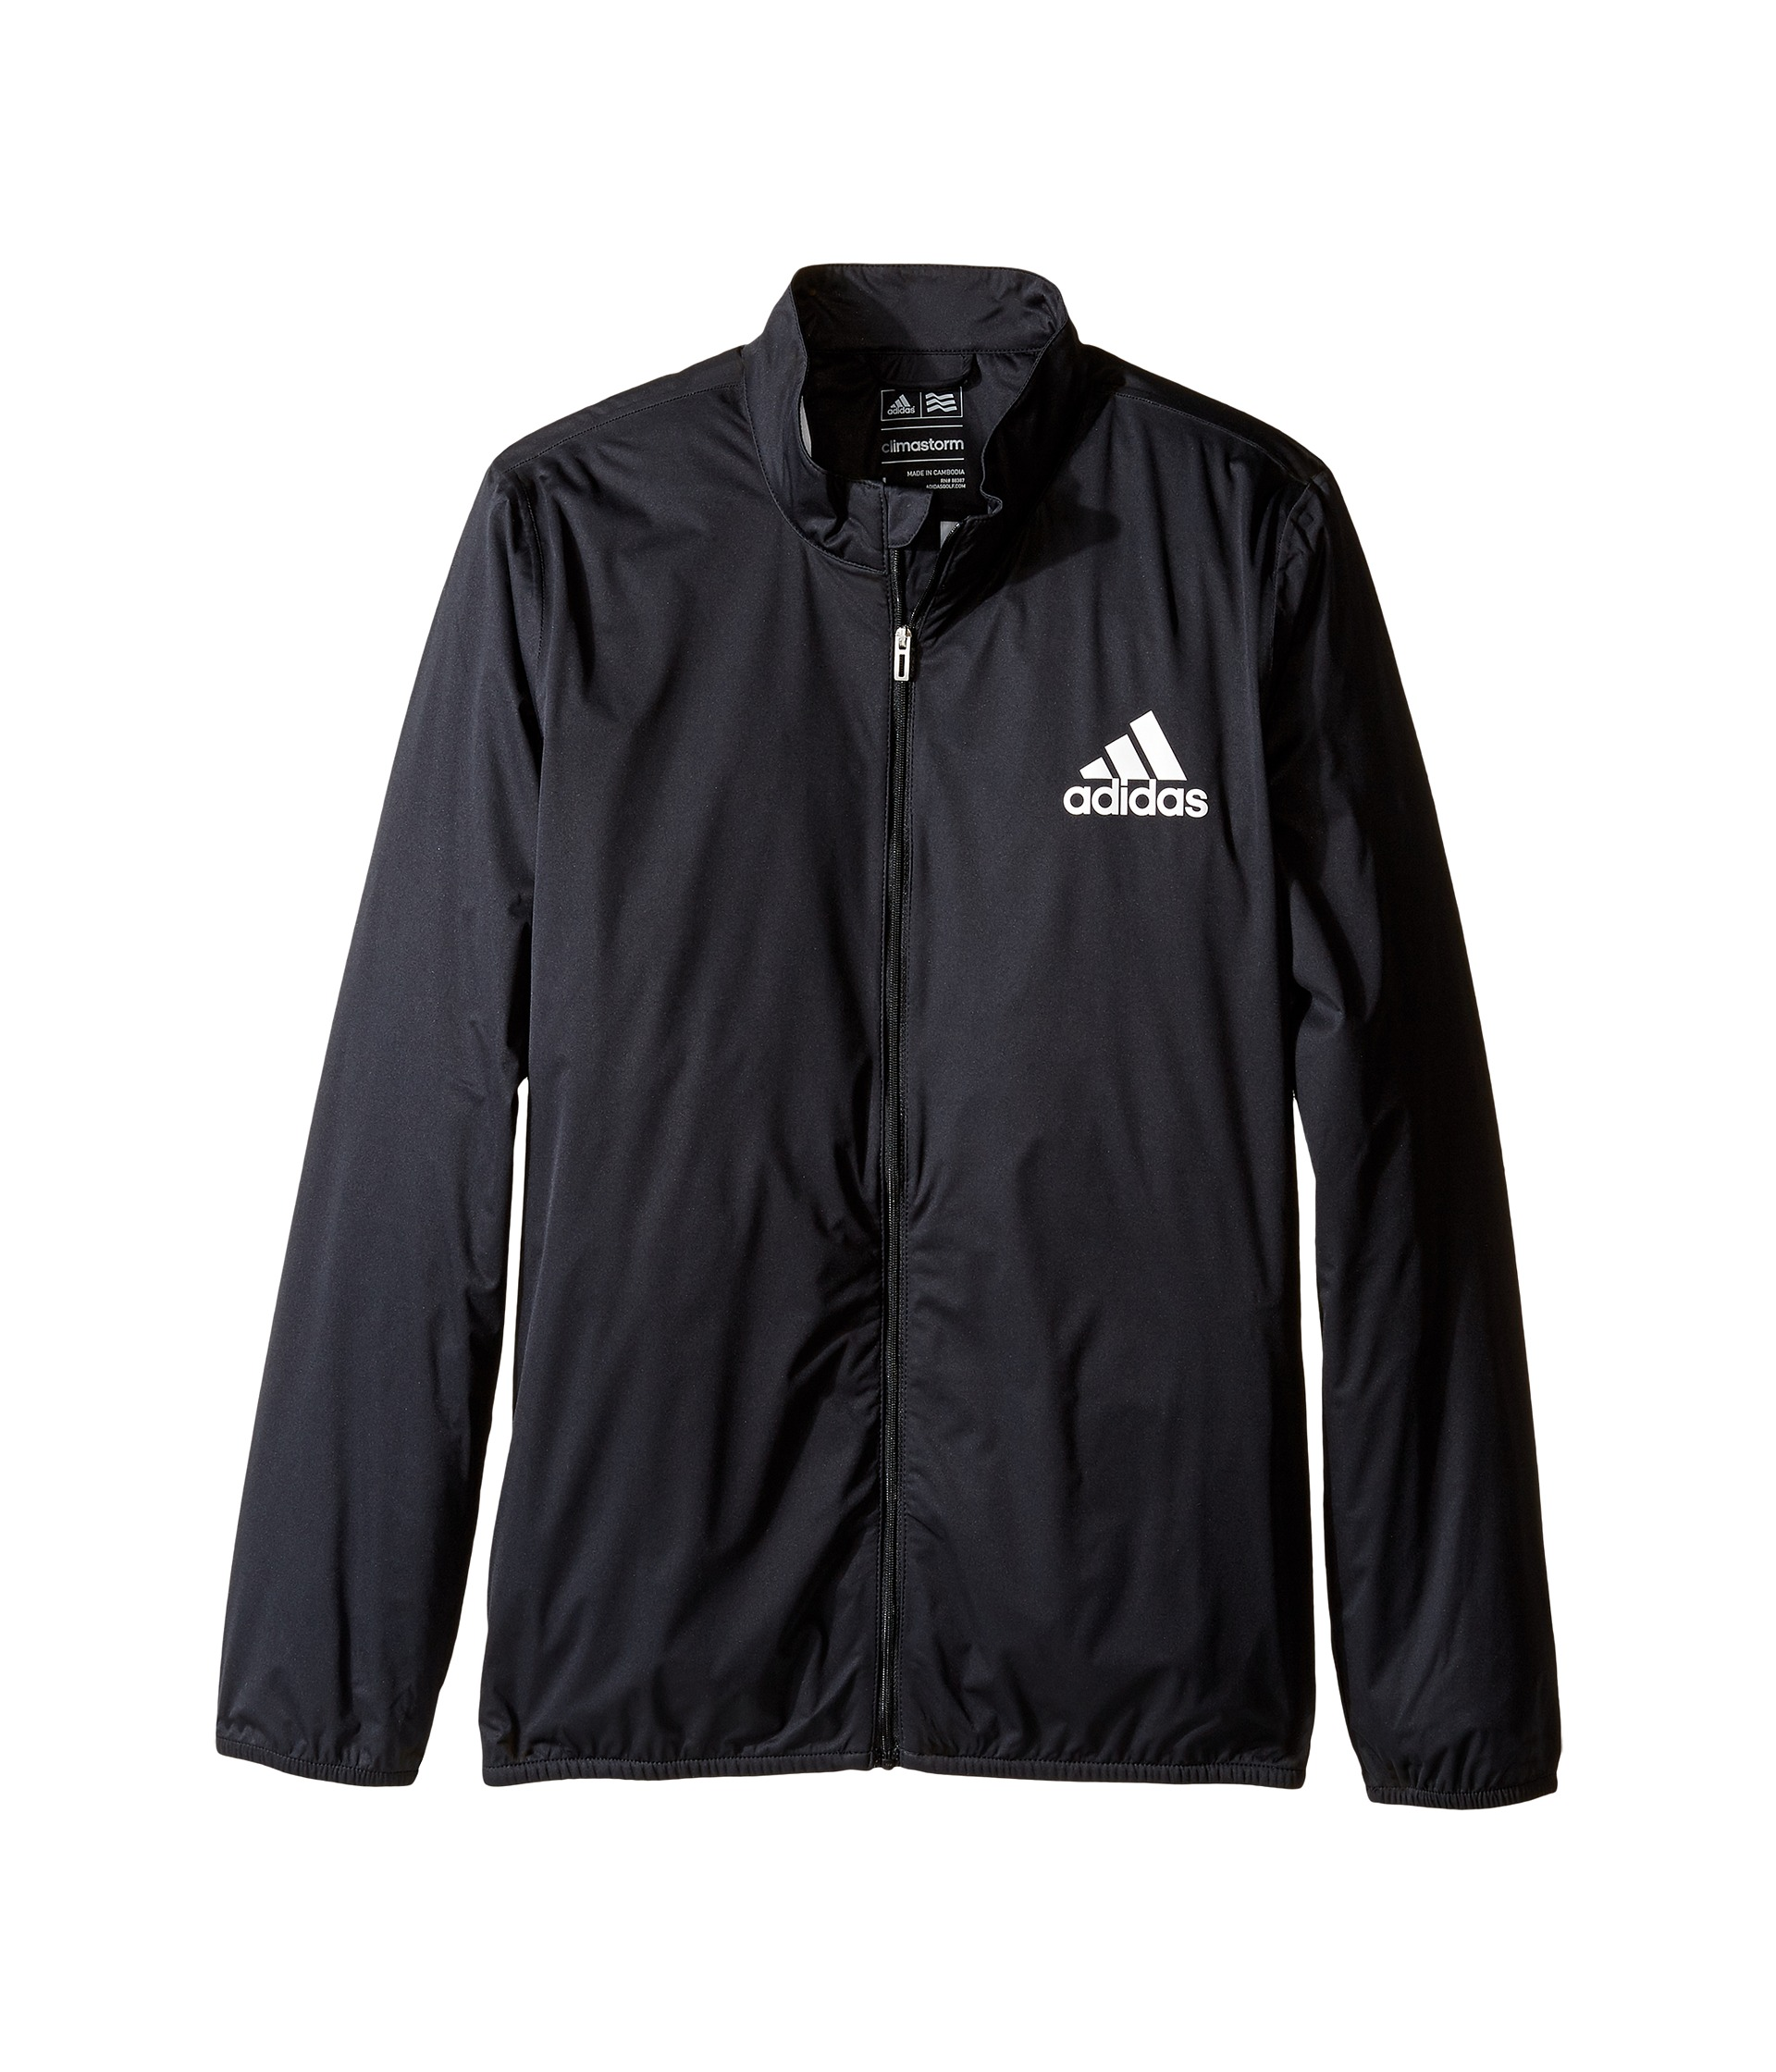 Adidas golf kids provisional rain jacket big kids at for Adidas golf rain shirt